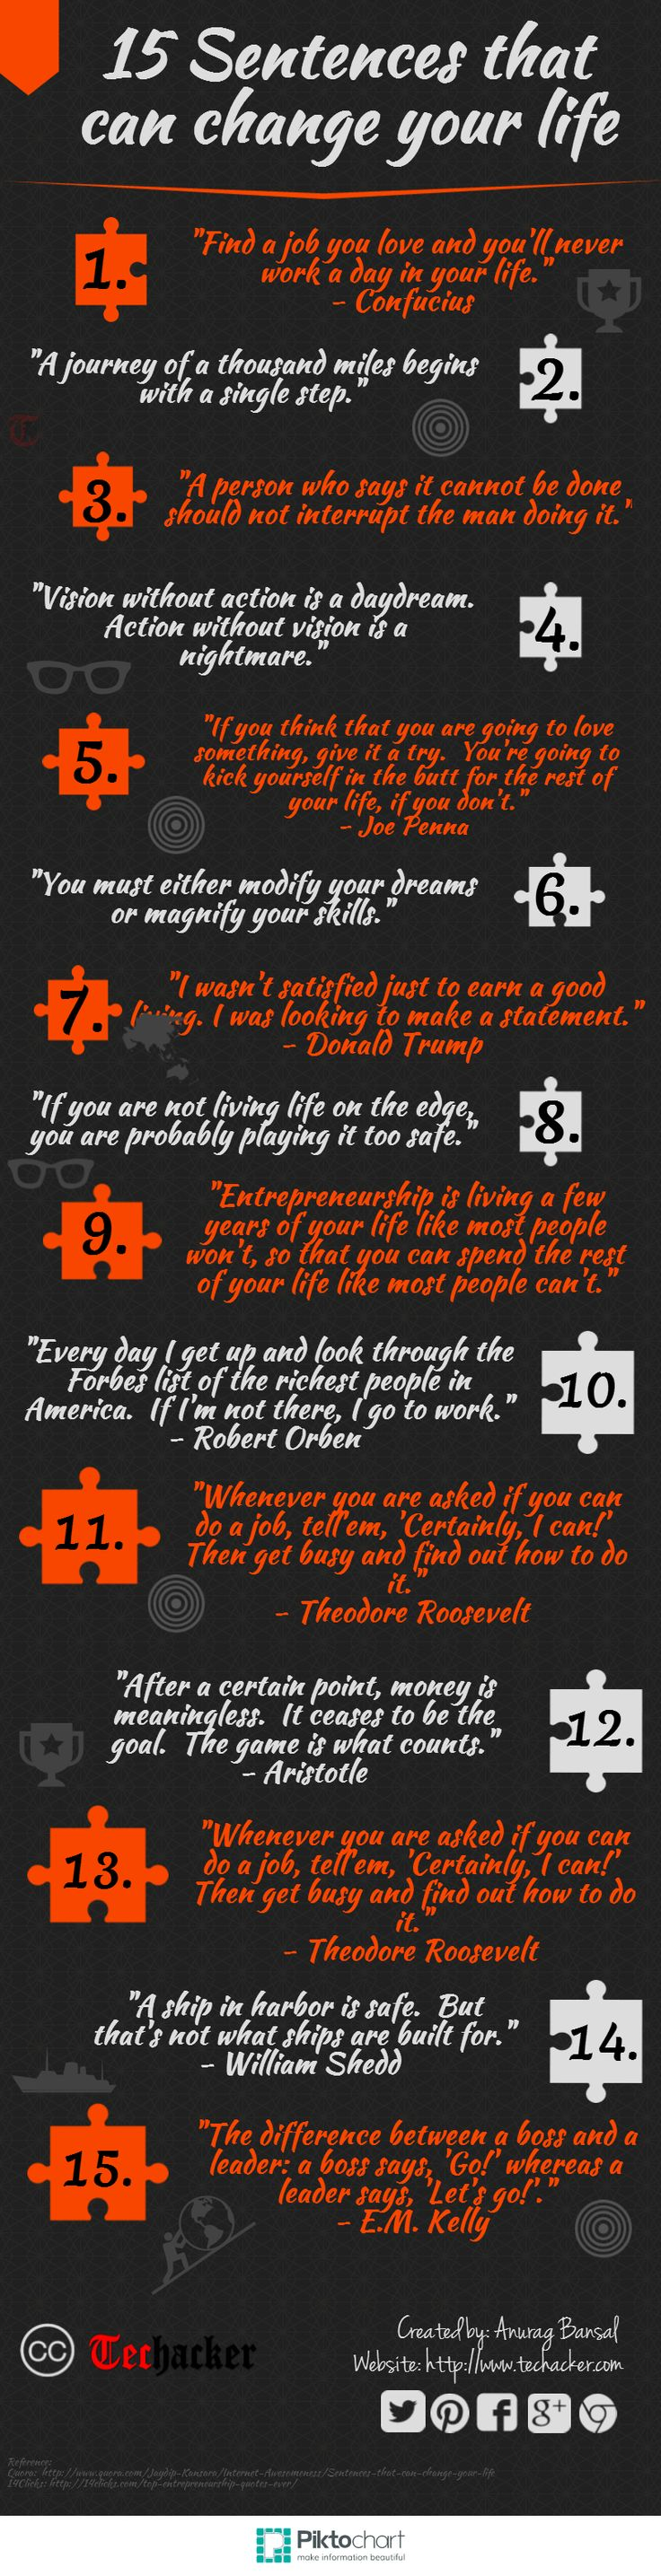 15 Sentences that can change your life [Infographics] - Techacker Shame 13 & 15 are the same